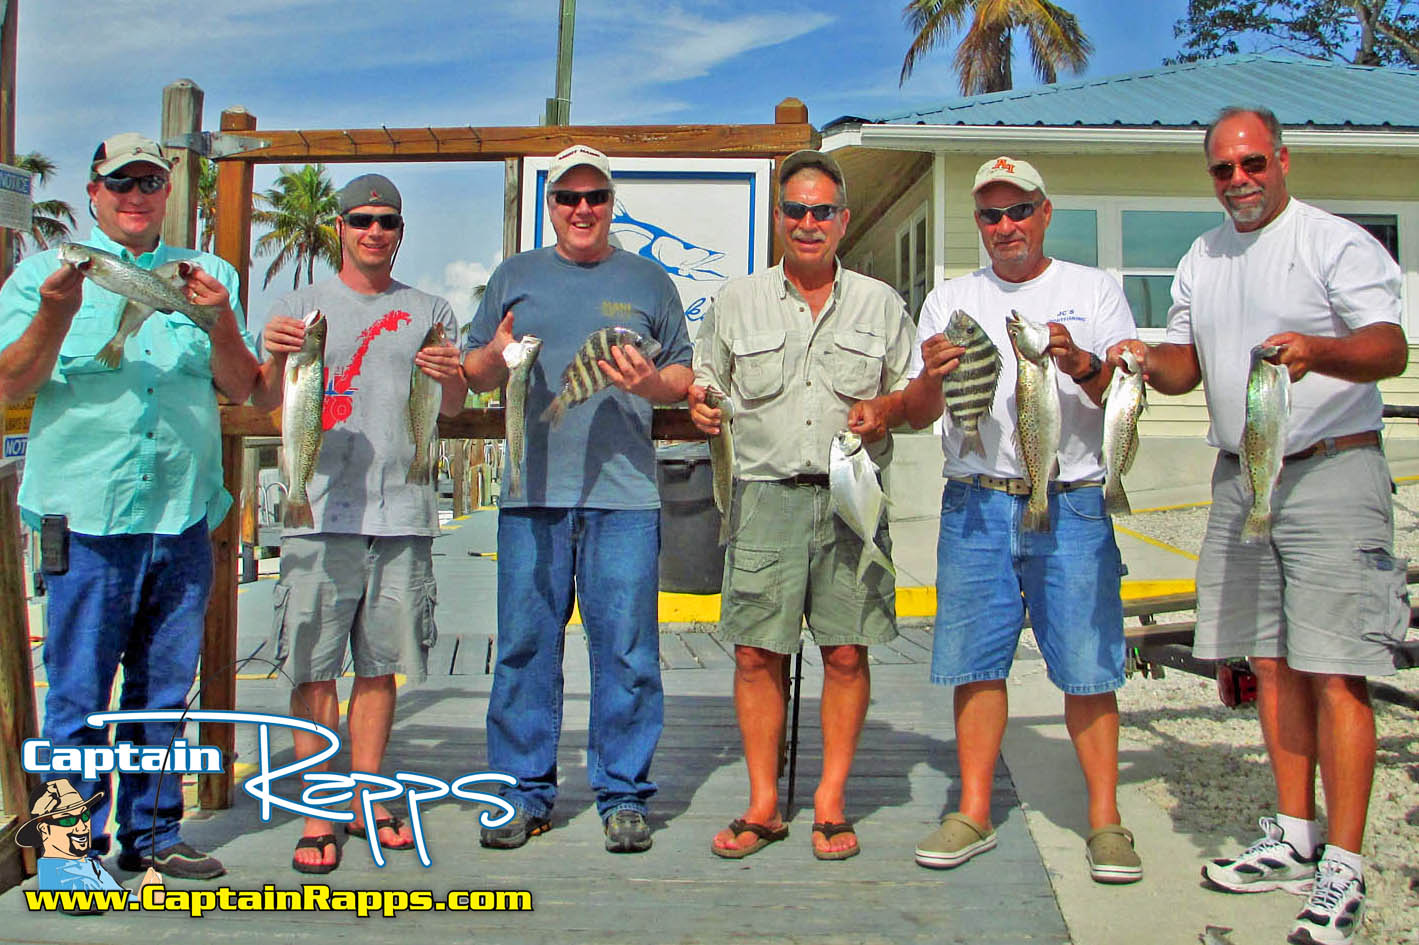 Fishing family friendly group special events corporate trips everglades city chokoloskee fishing fl